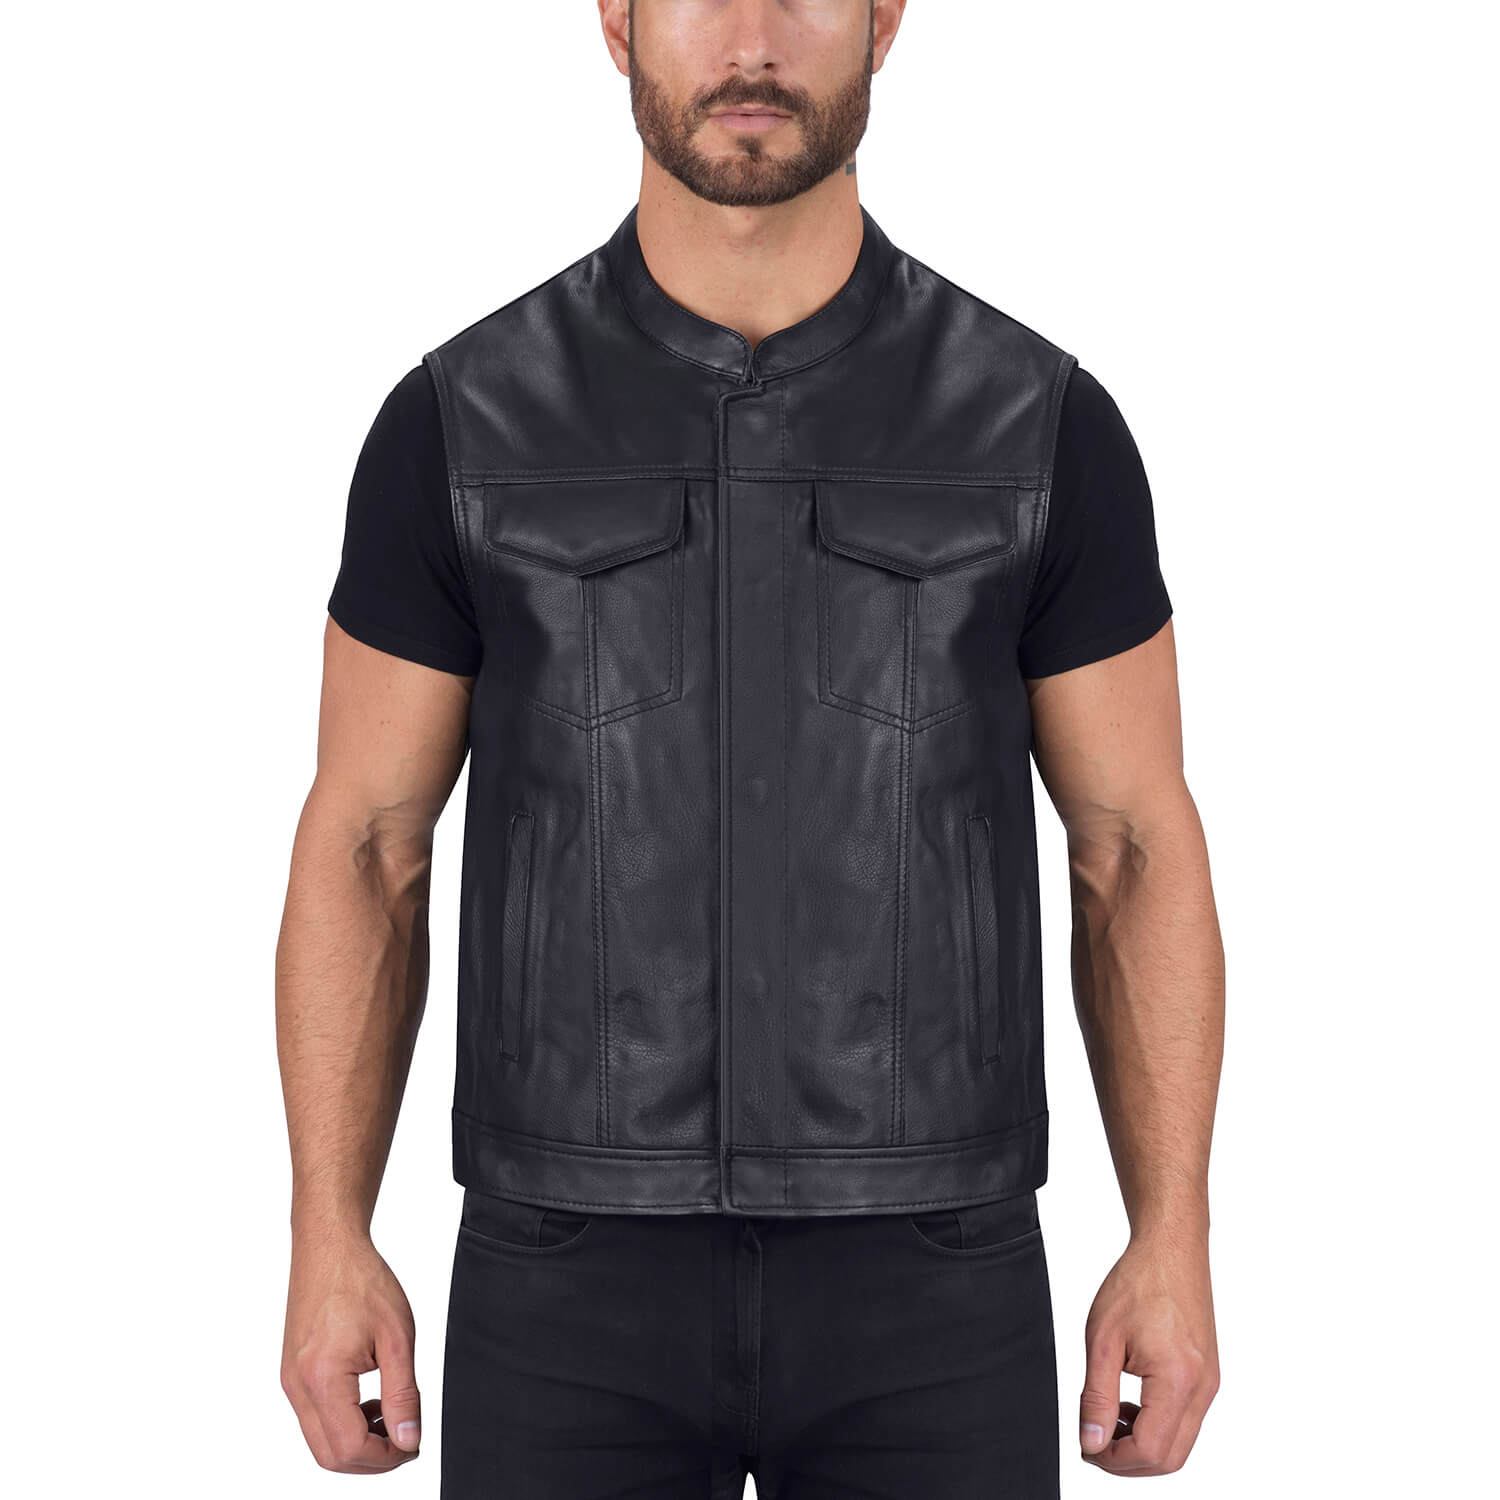 Viking Cycle Gardar Genuine Buffalo Leather Motorcycle Vest for Men Biker Club Vest with Concealed Carry Hidden Pocket